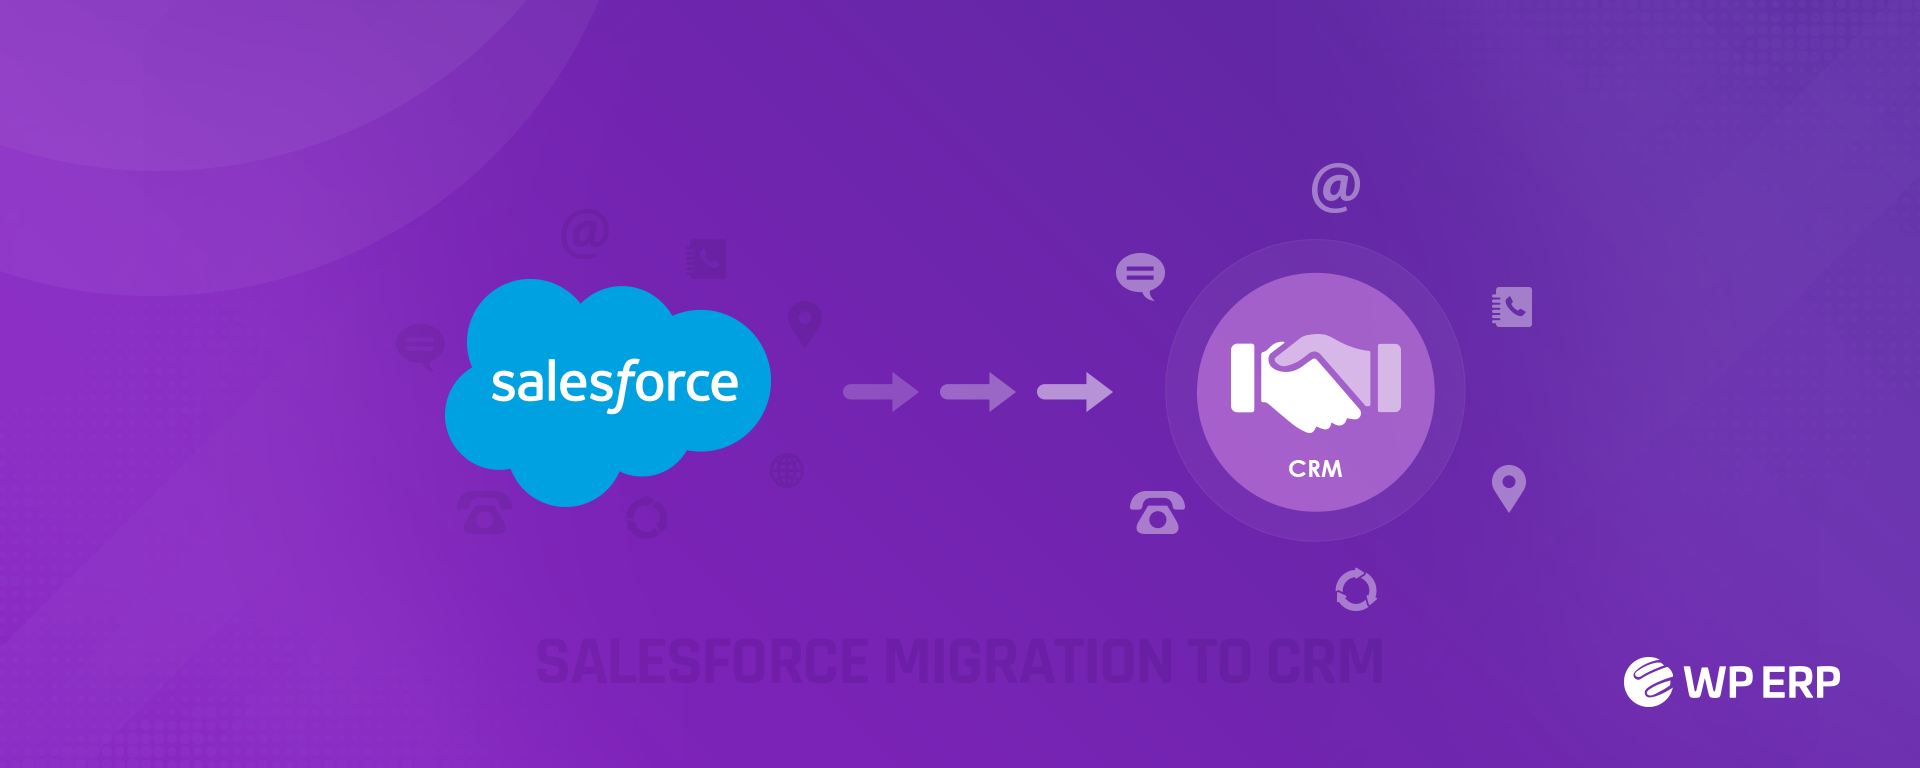 Migrating from SalesForce to WP CRM